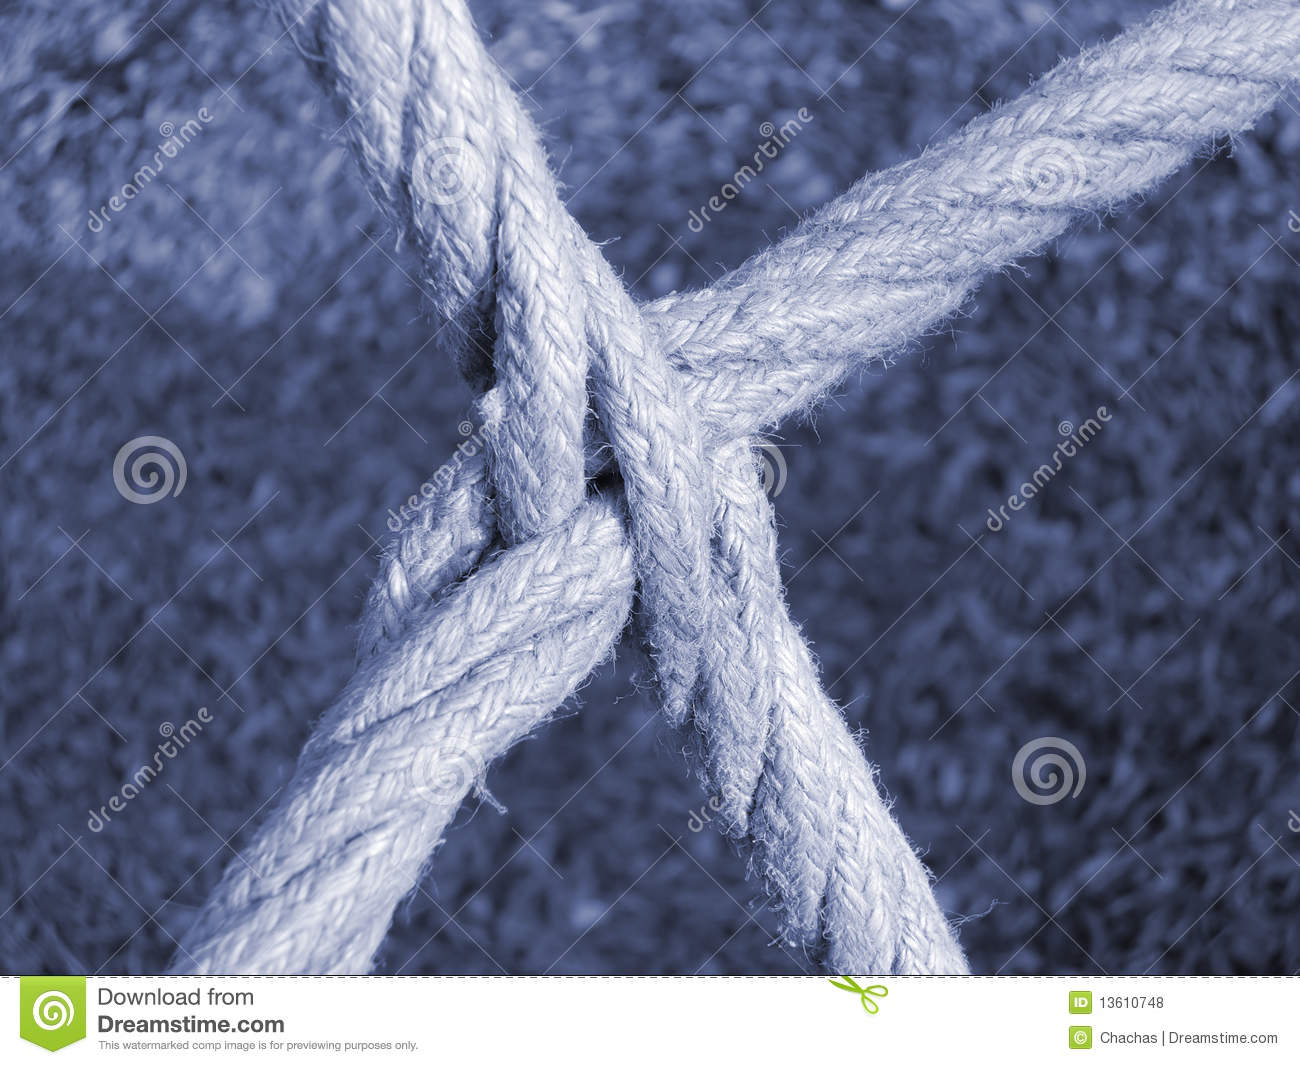 Intersecting Ropes Royalty Free Stock Photos - Image: 13610748